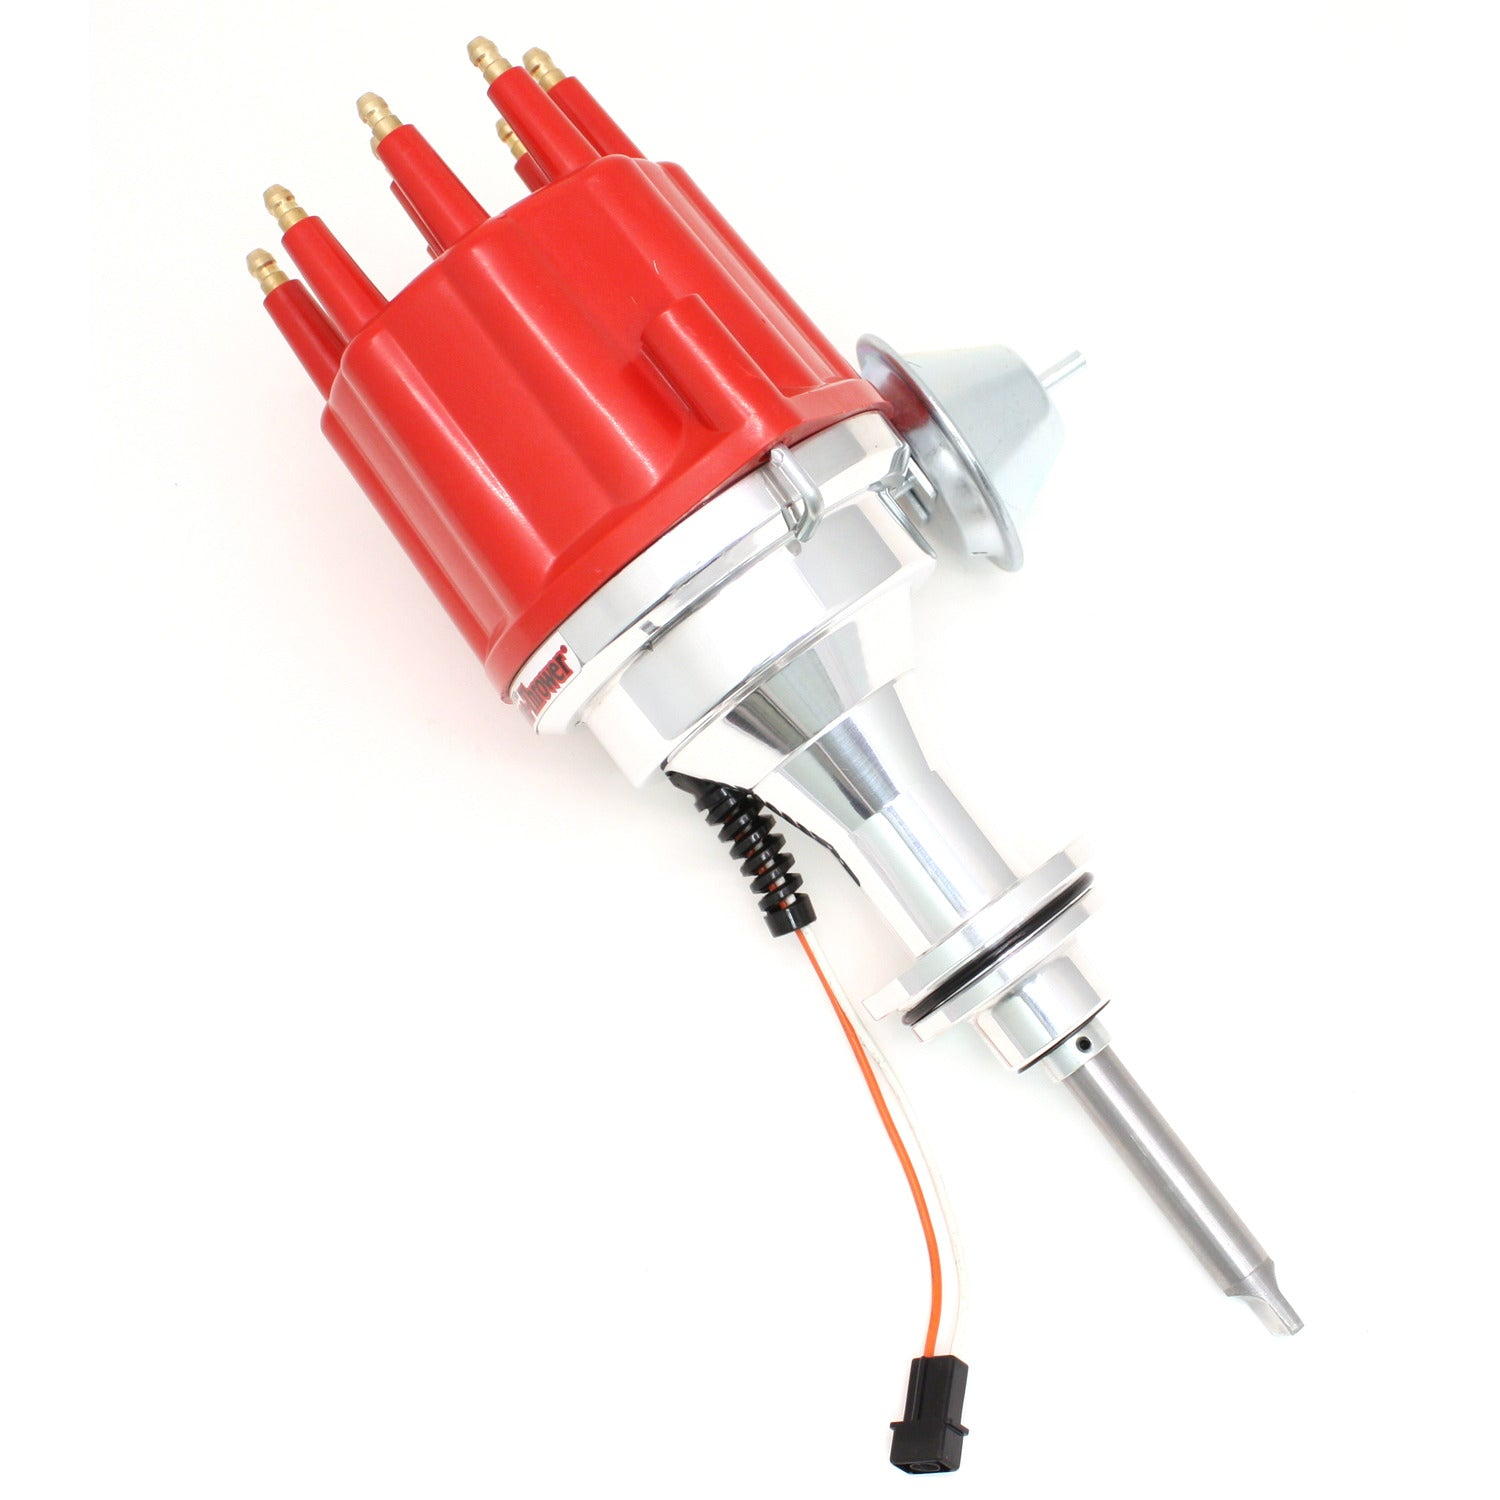 PerTronix D343711 Flame-Thrower Electronic Distributor Billet Magnetic Trigger Chrysler/Dodge/Plymouth 413-440 & 426 Hemi Red Male Cap Vacuum Advance